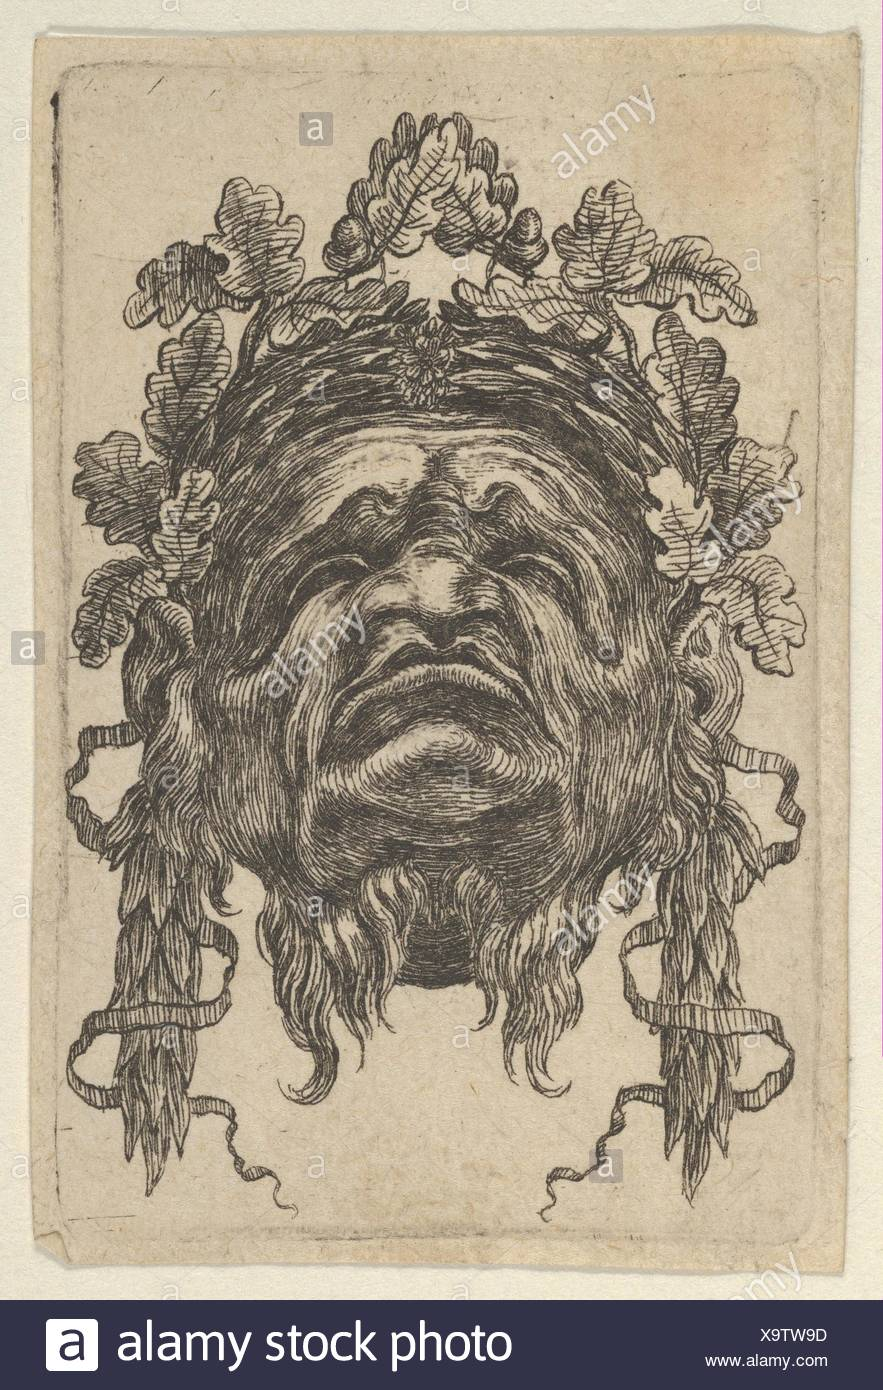 Mask with a Wreath of Laurels and a Wreath of Oak Leaves, Seen from Below, from Divers Masques. Series/Portfolio: Divers Masques; Artist: François - Stock Image